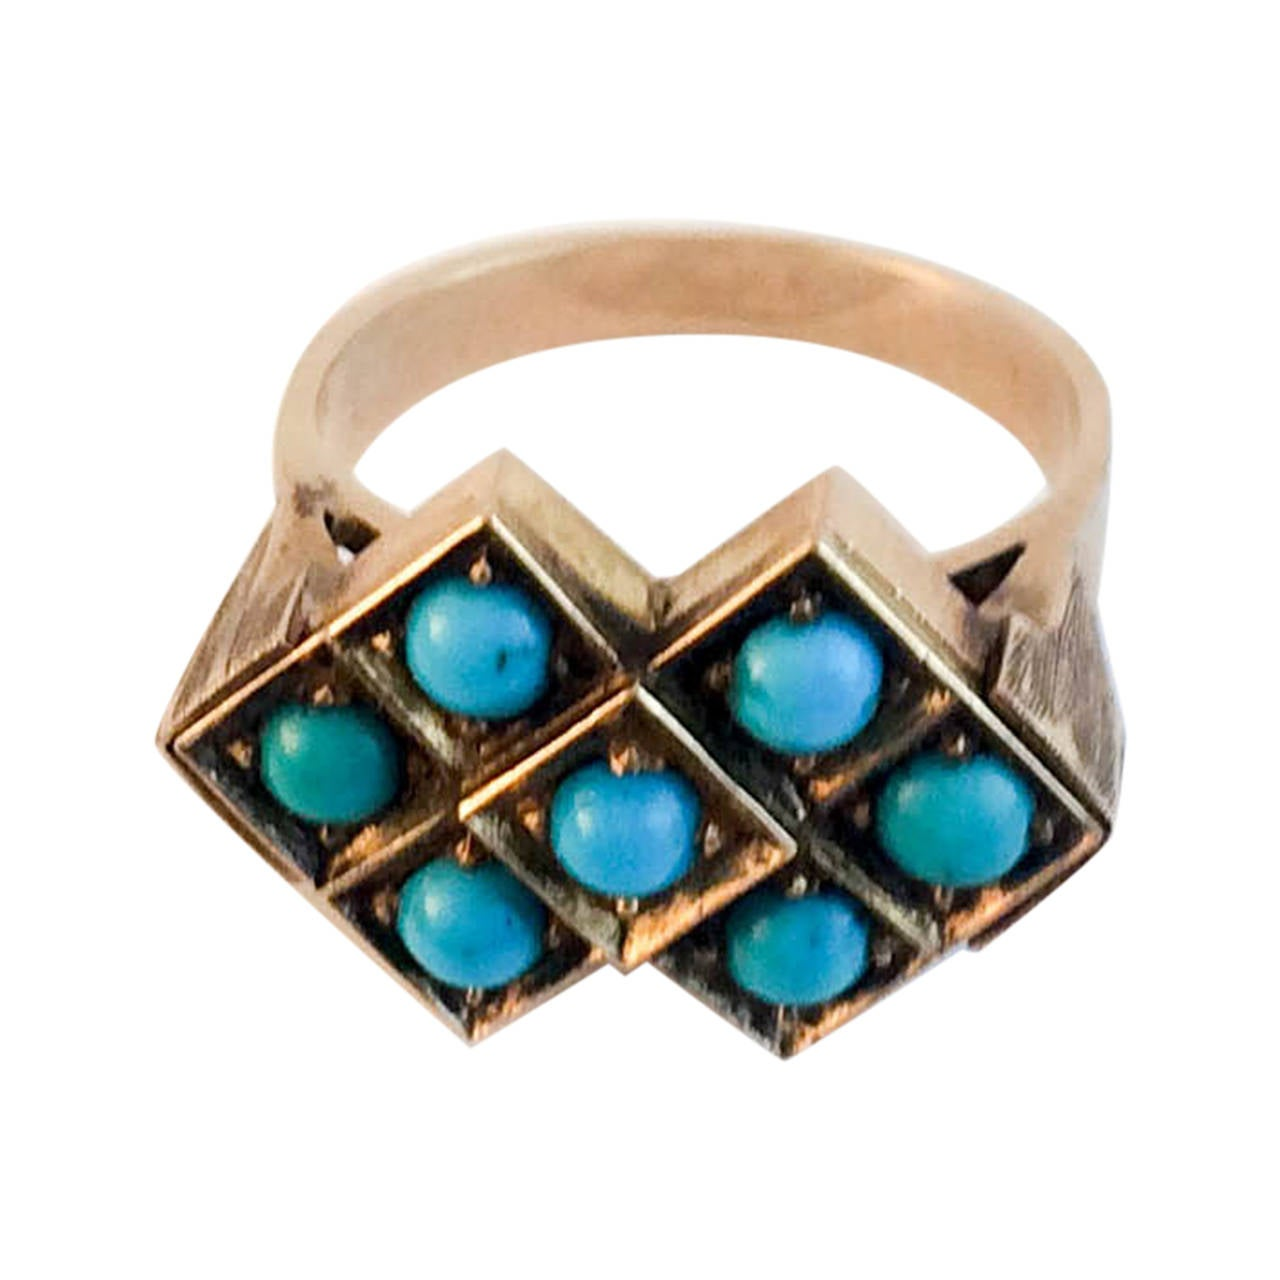 antique turquoise ring 1900s at 1stdibs